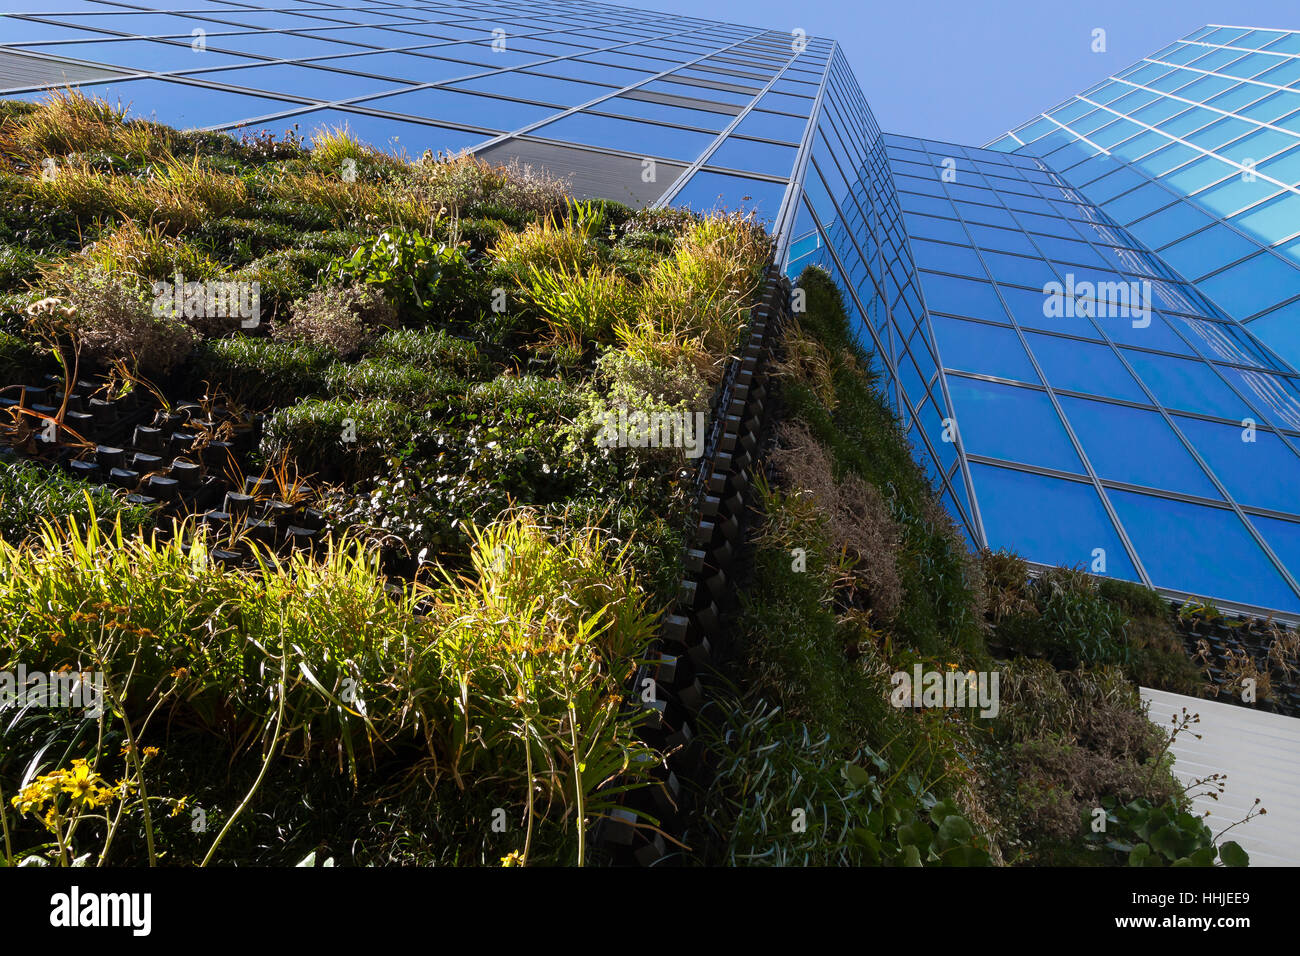 A modern office building using plants on the walls (vertically vegitated)  to combat heat island effects in summer - Stock Image